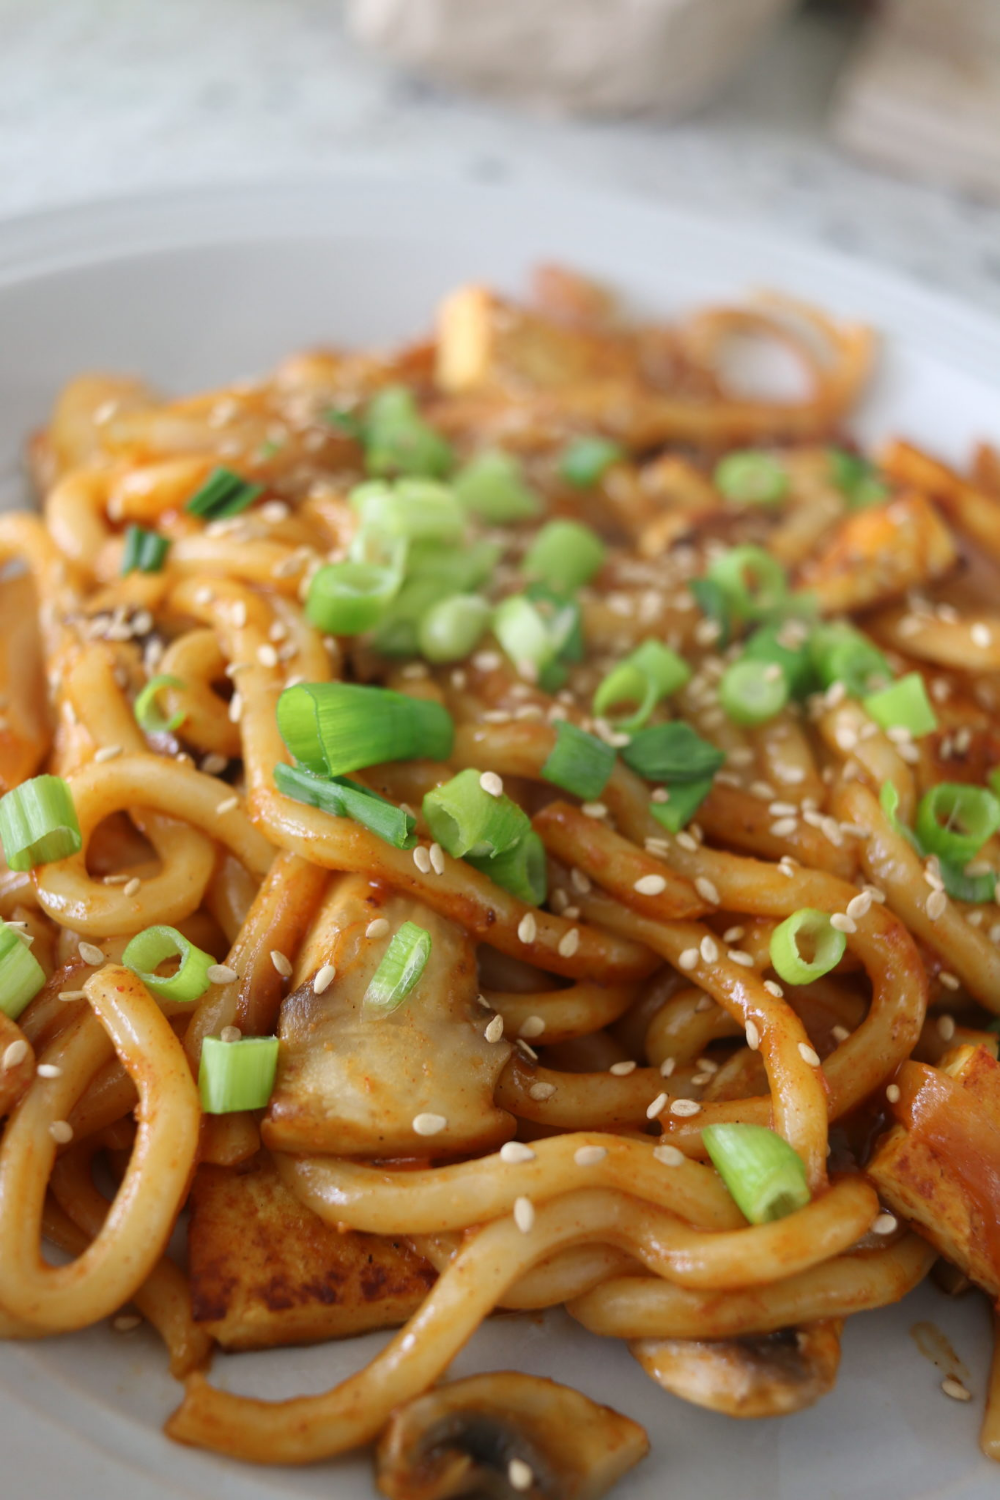 5 Minute Spicy Udon Noodle Recipe Cheap Lazy Vegan Udon Noodles Spicy Udon Noodle Recipe Vegetarian Udon